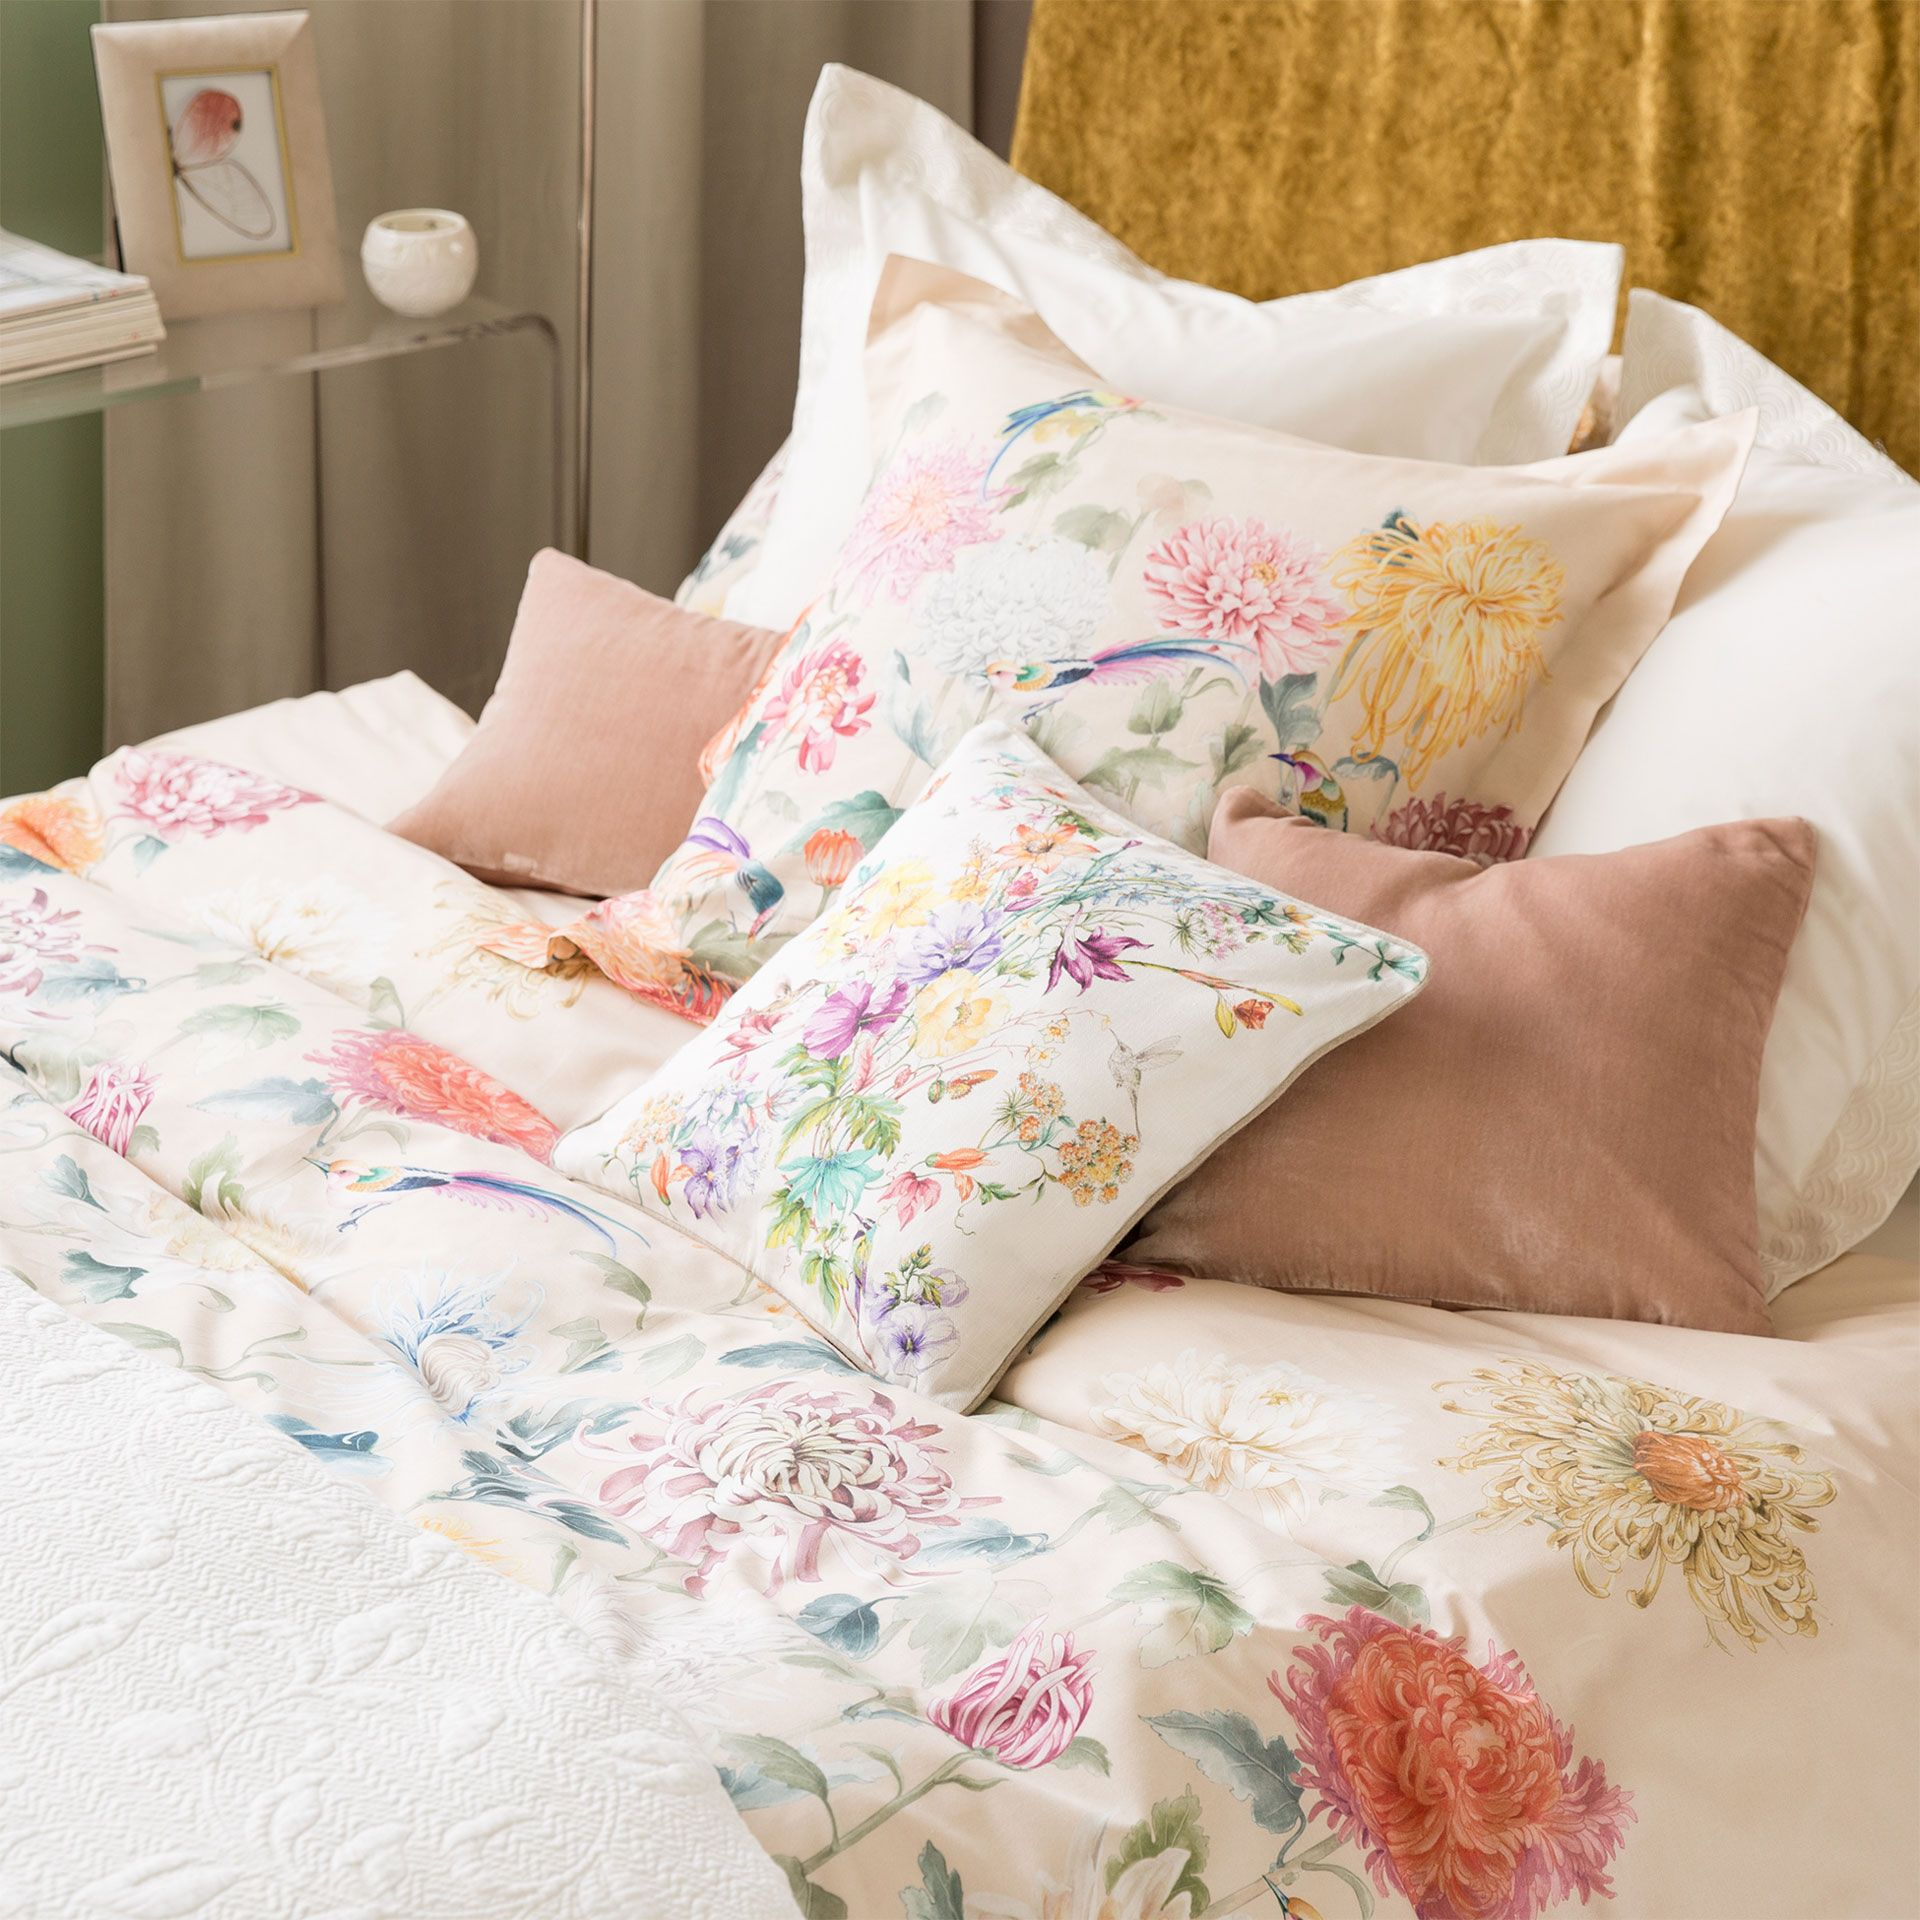 Muebles Zara Funda Nórdica Estampado Crisantemo Cama Zara Home